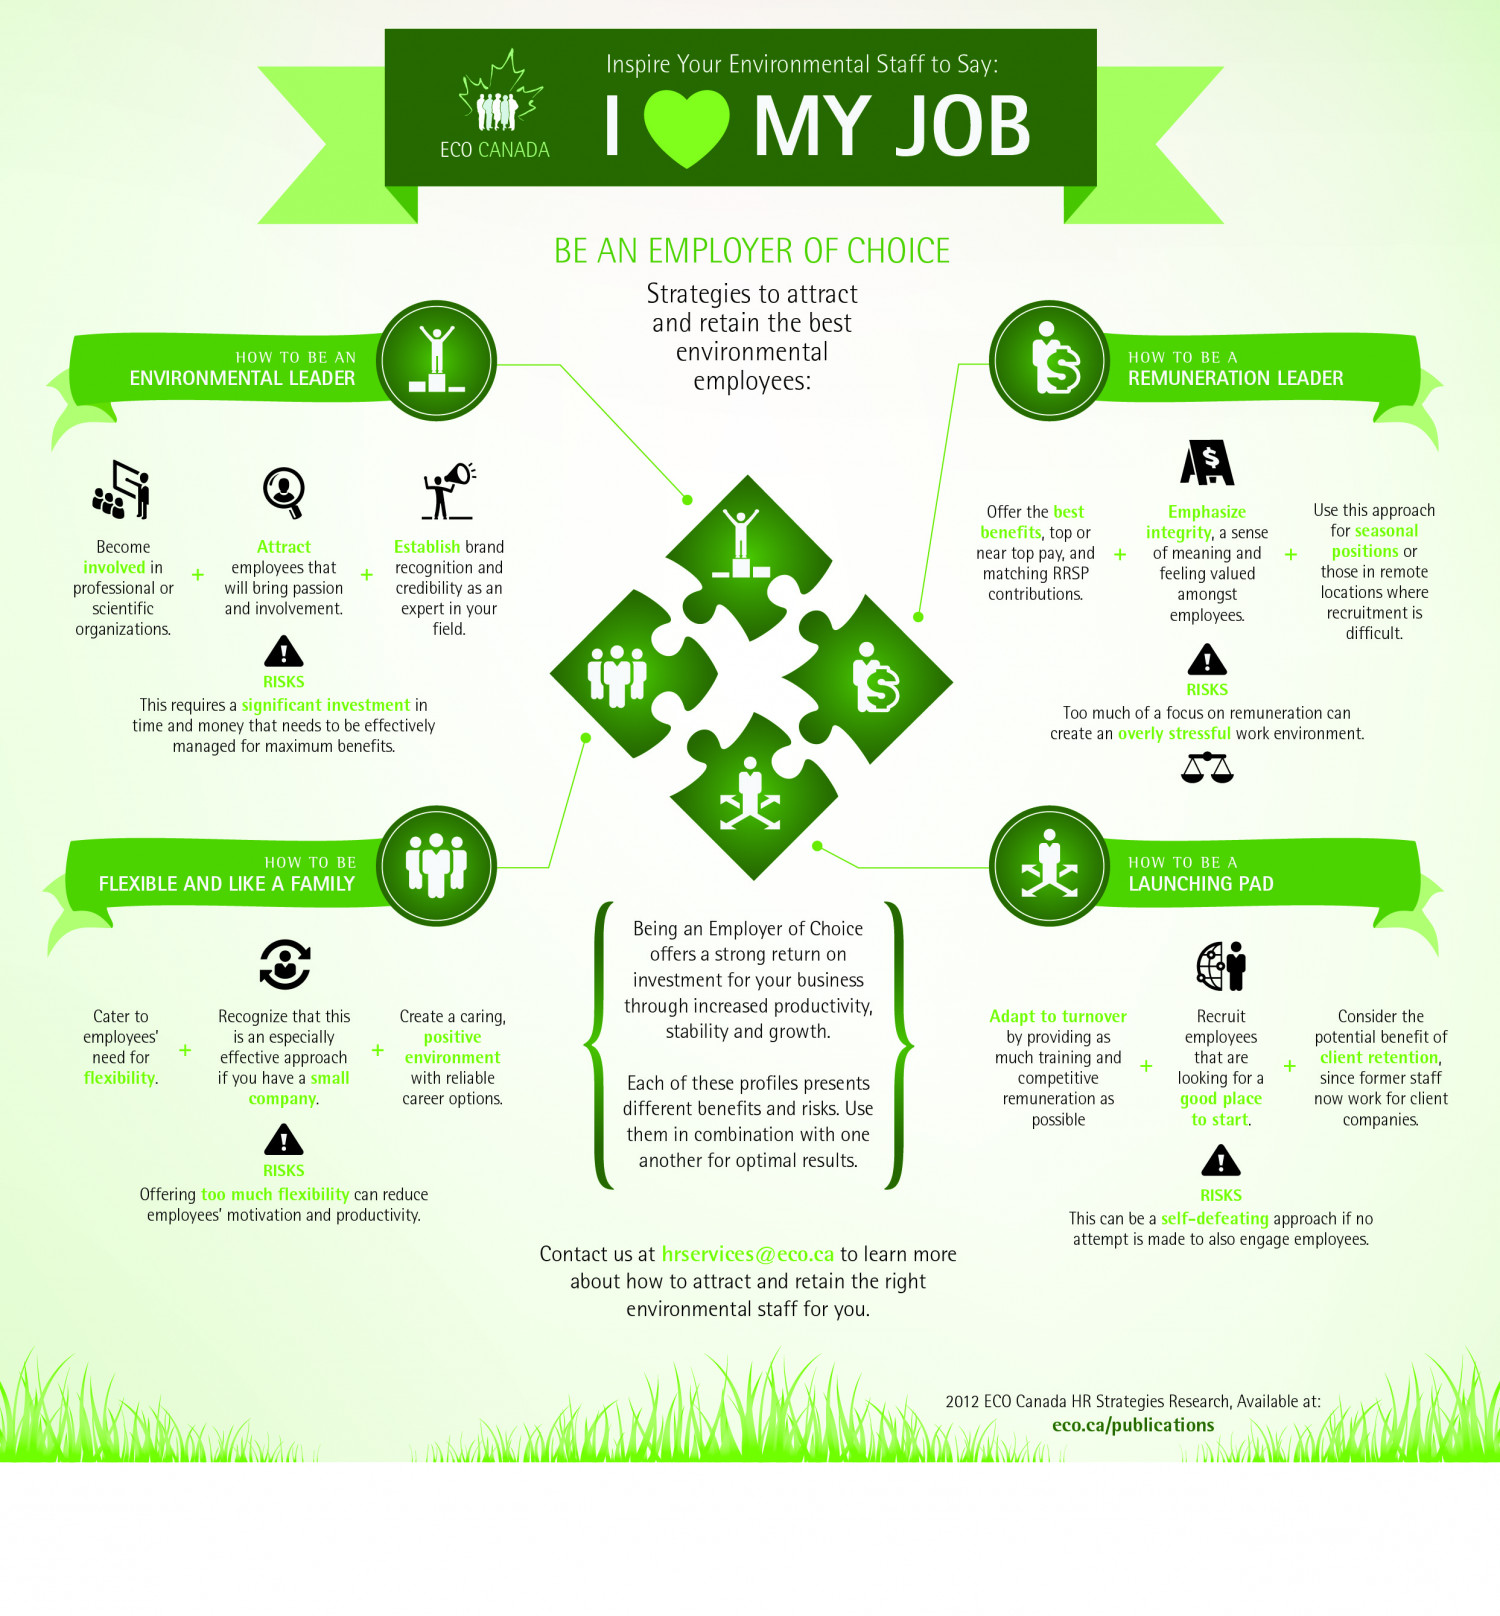 Inspire Your Environmental Staff to Say: I Love My Job! Infographic